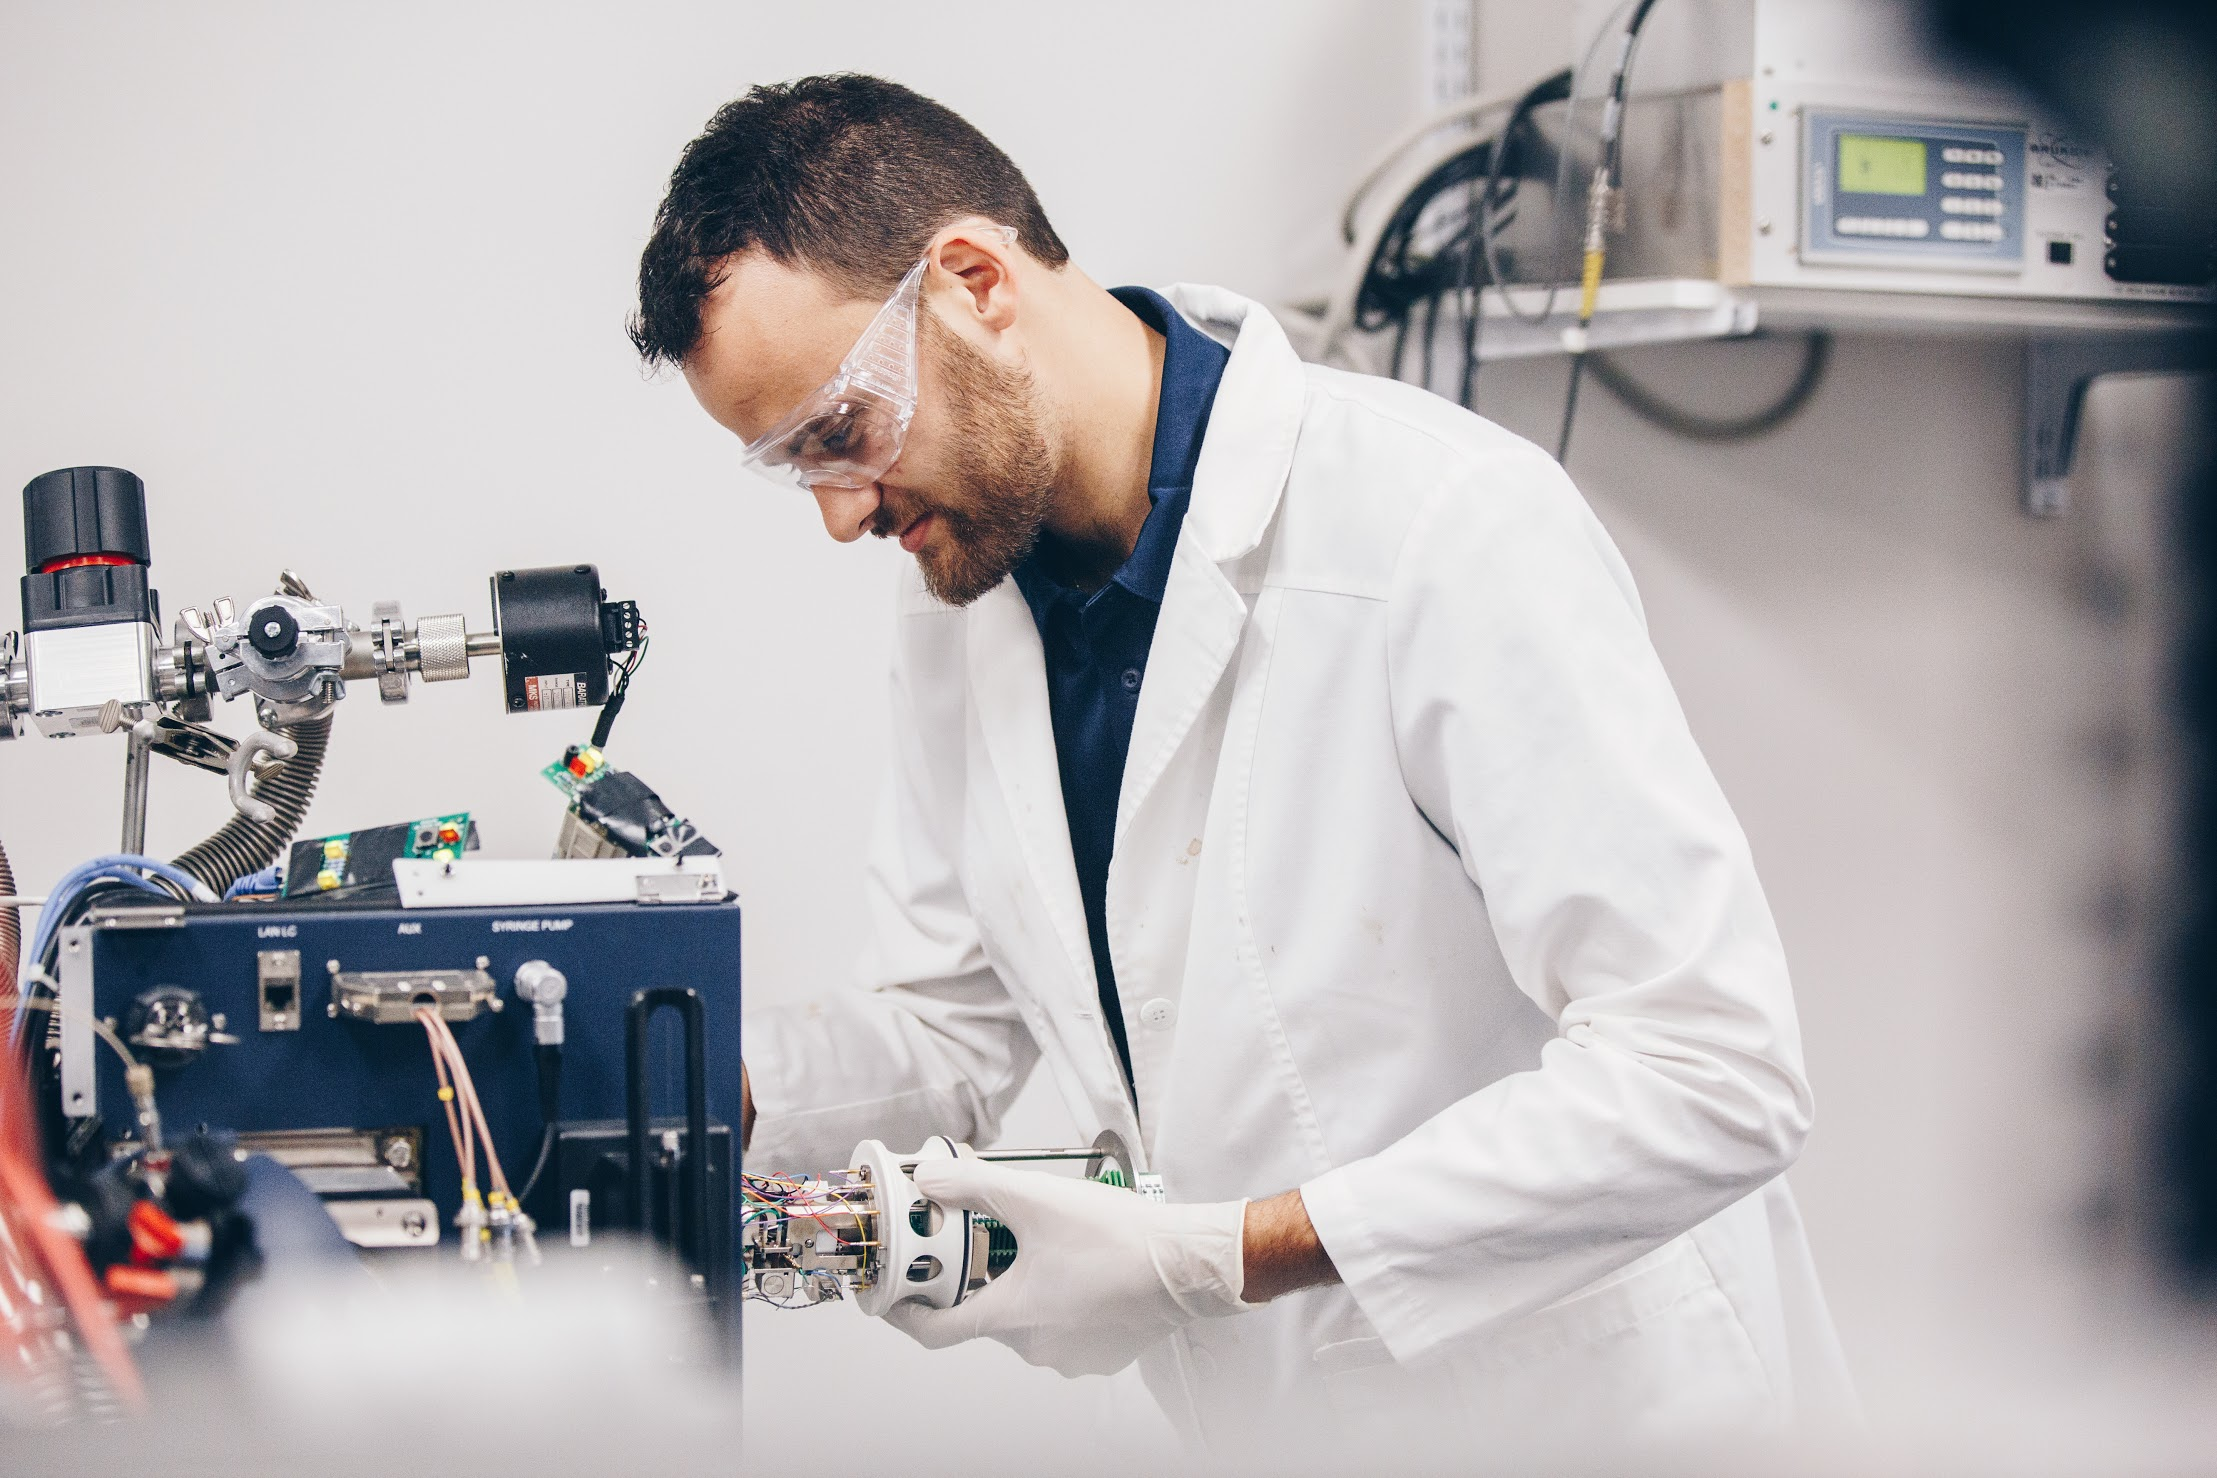 Paolo Benigni is part of the research team at FIU's Center for Aquatic Chemistry and Environment that has developed a new tool to assess oil spill damage.